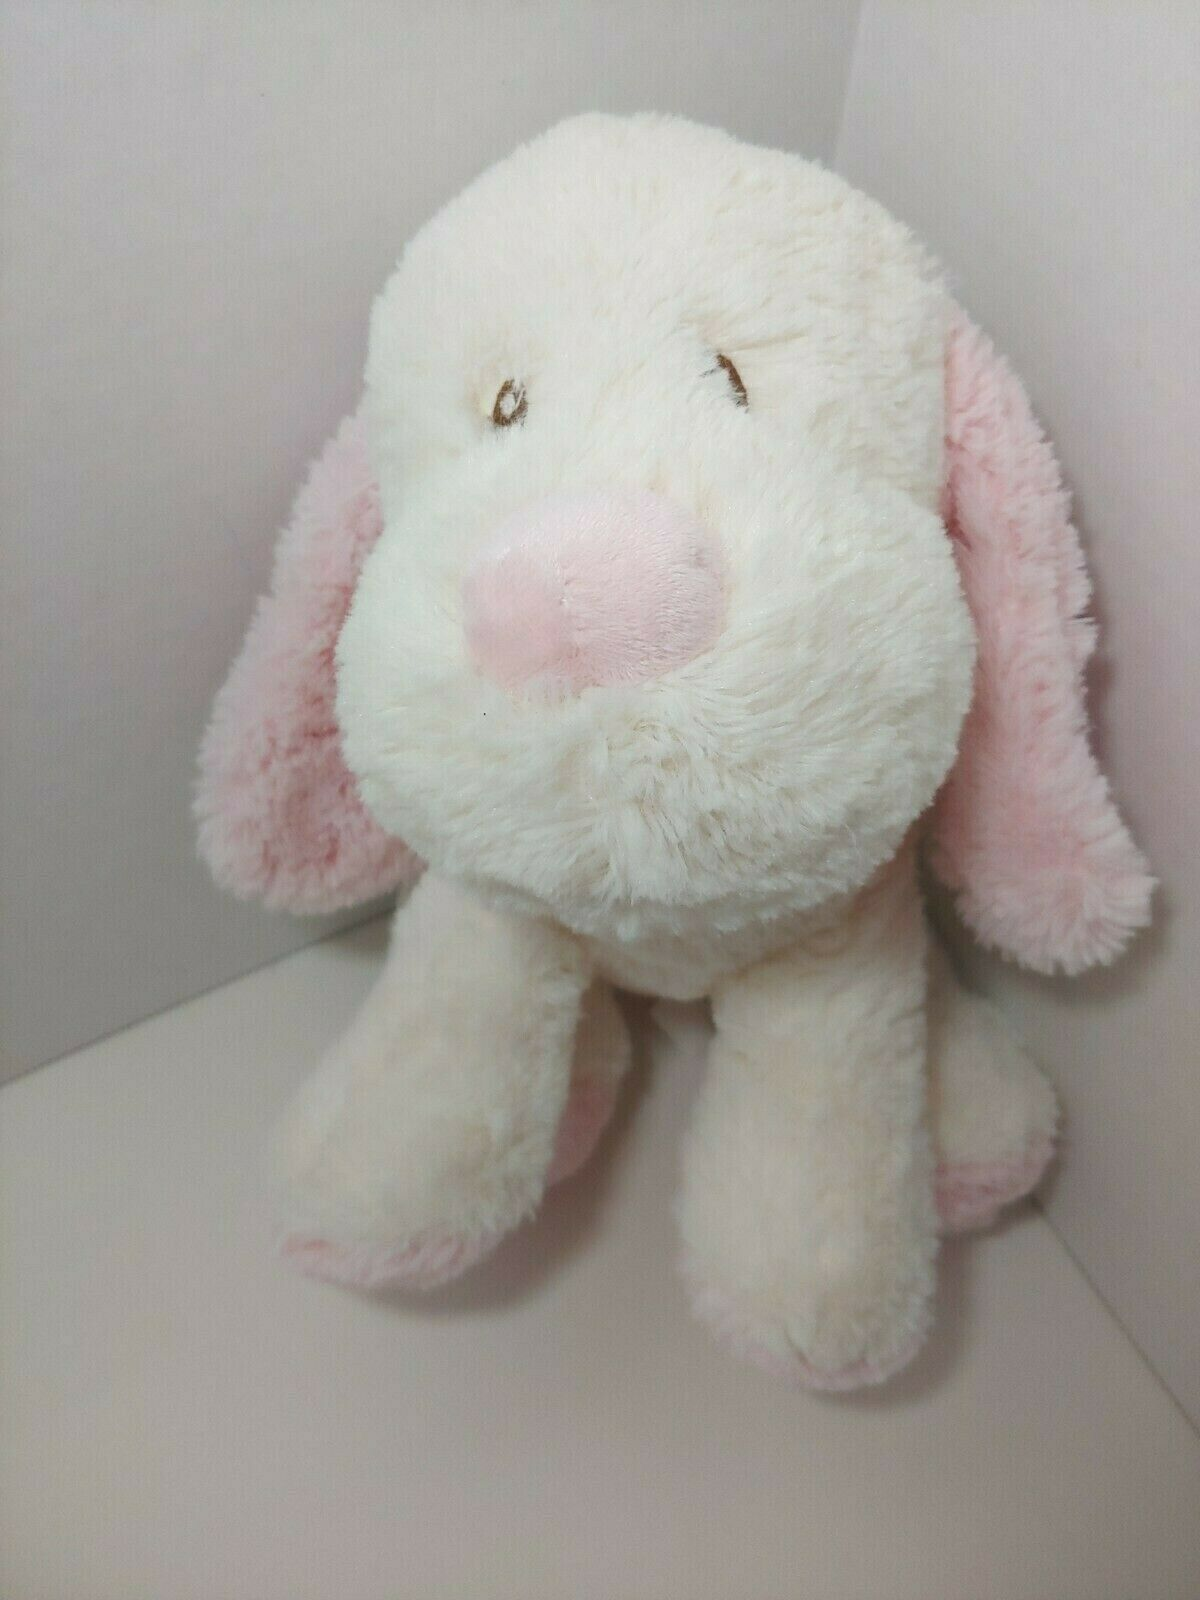 Primary image for Toys r us baby plush puppy dog cream off white pink soft stuffed animal 2015